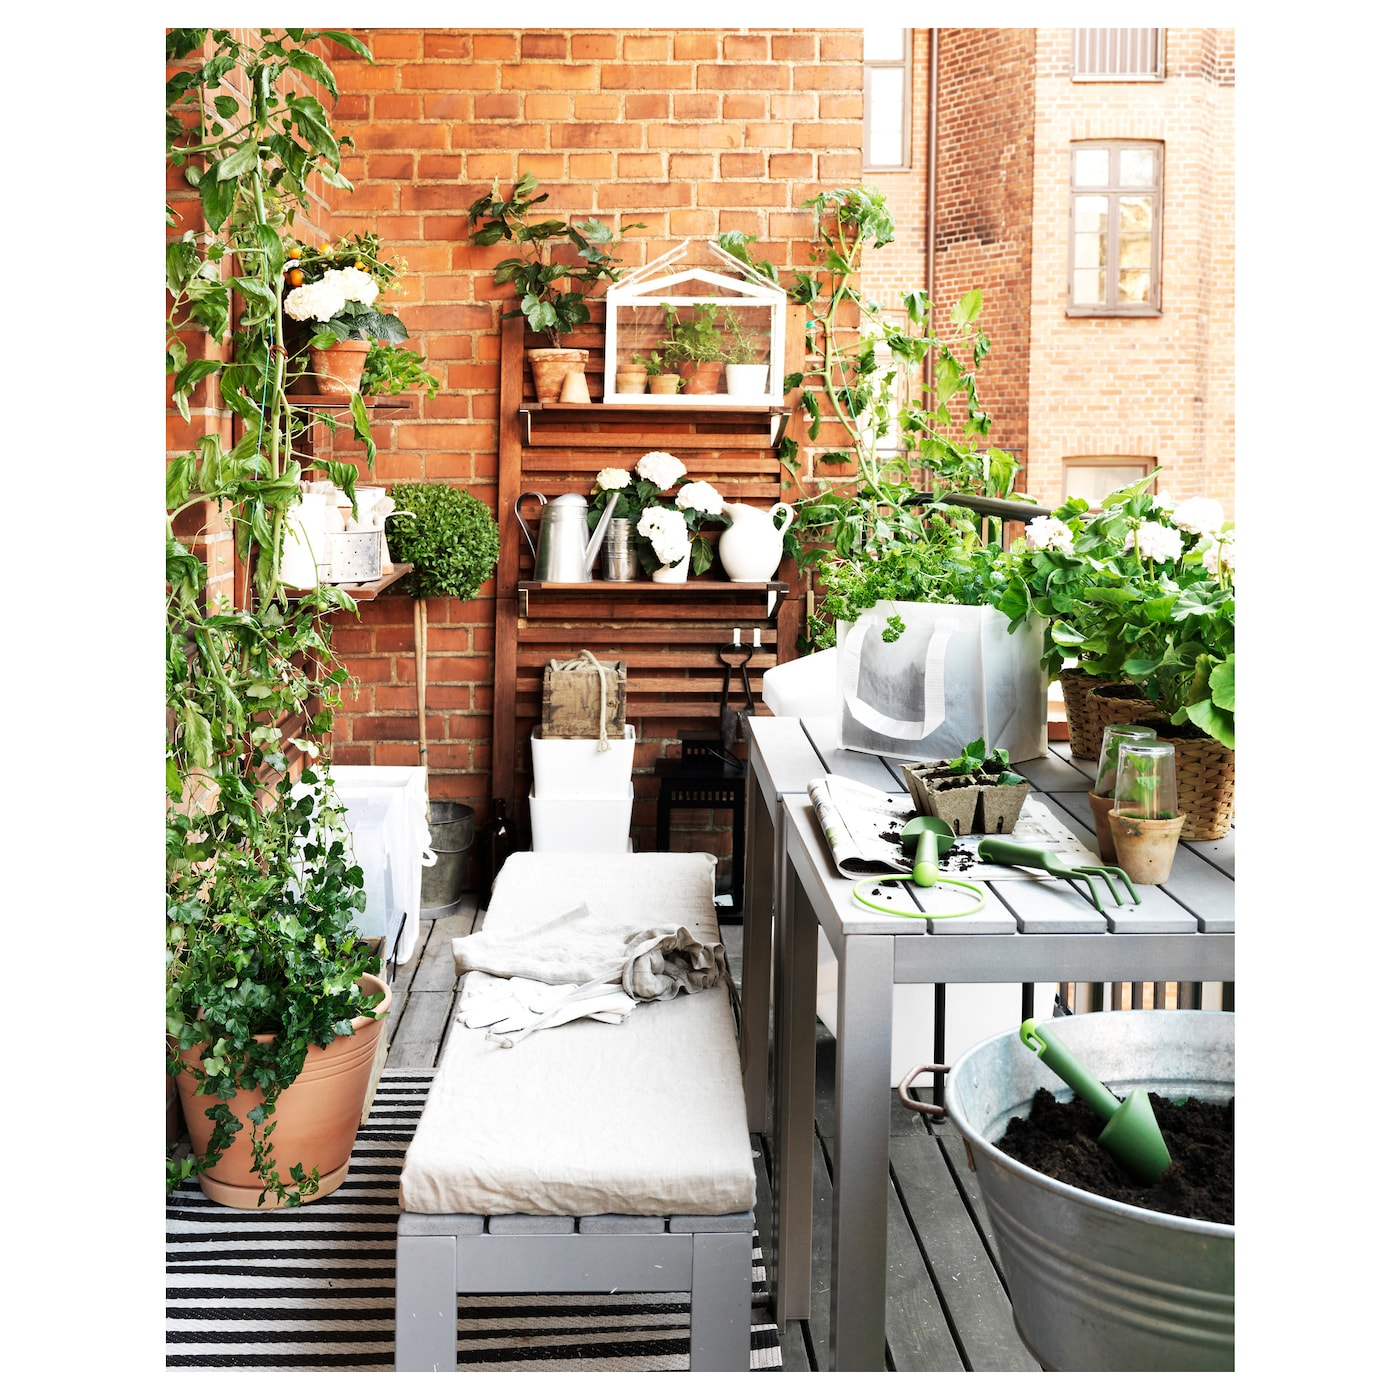 Ikea falster garden furniture design youtube - Ikea Falster Table Outdoor The Polystyrene Slats Are Weather Resistant And Easy To Care